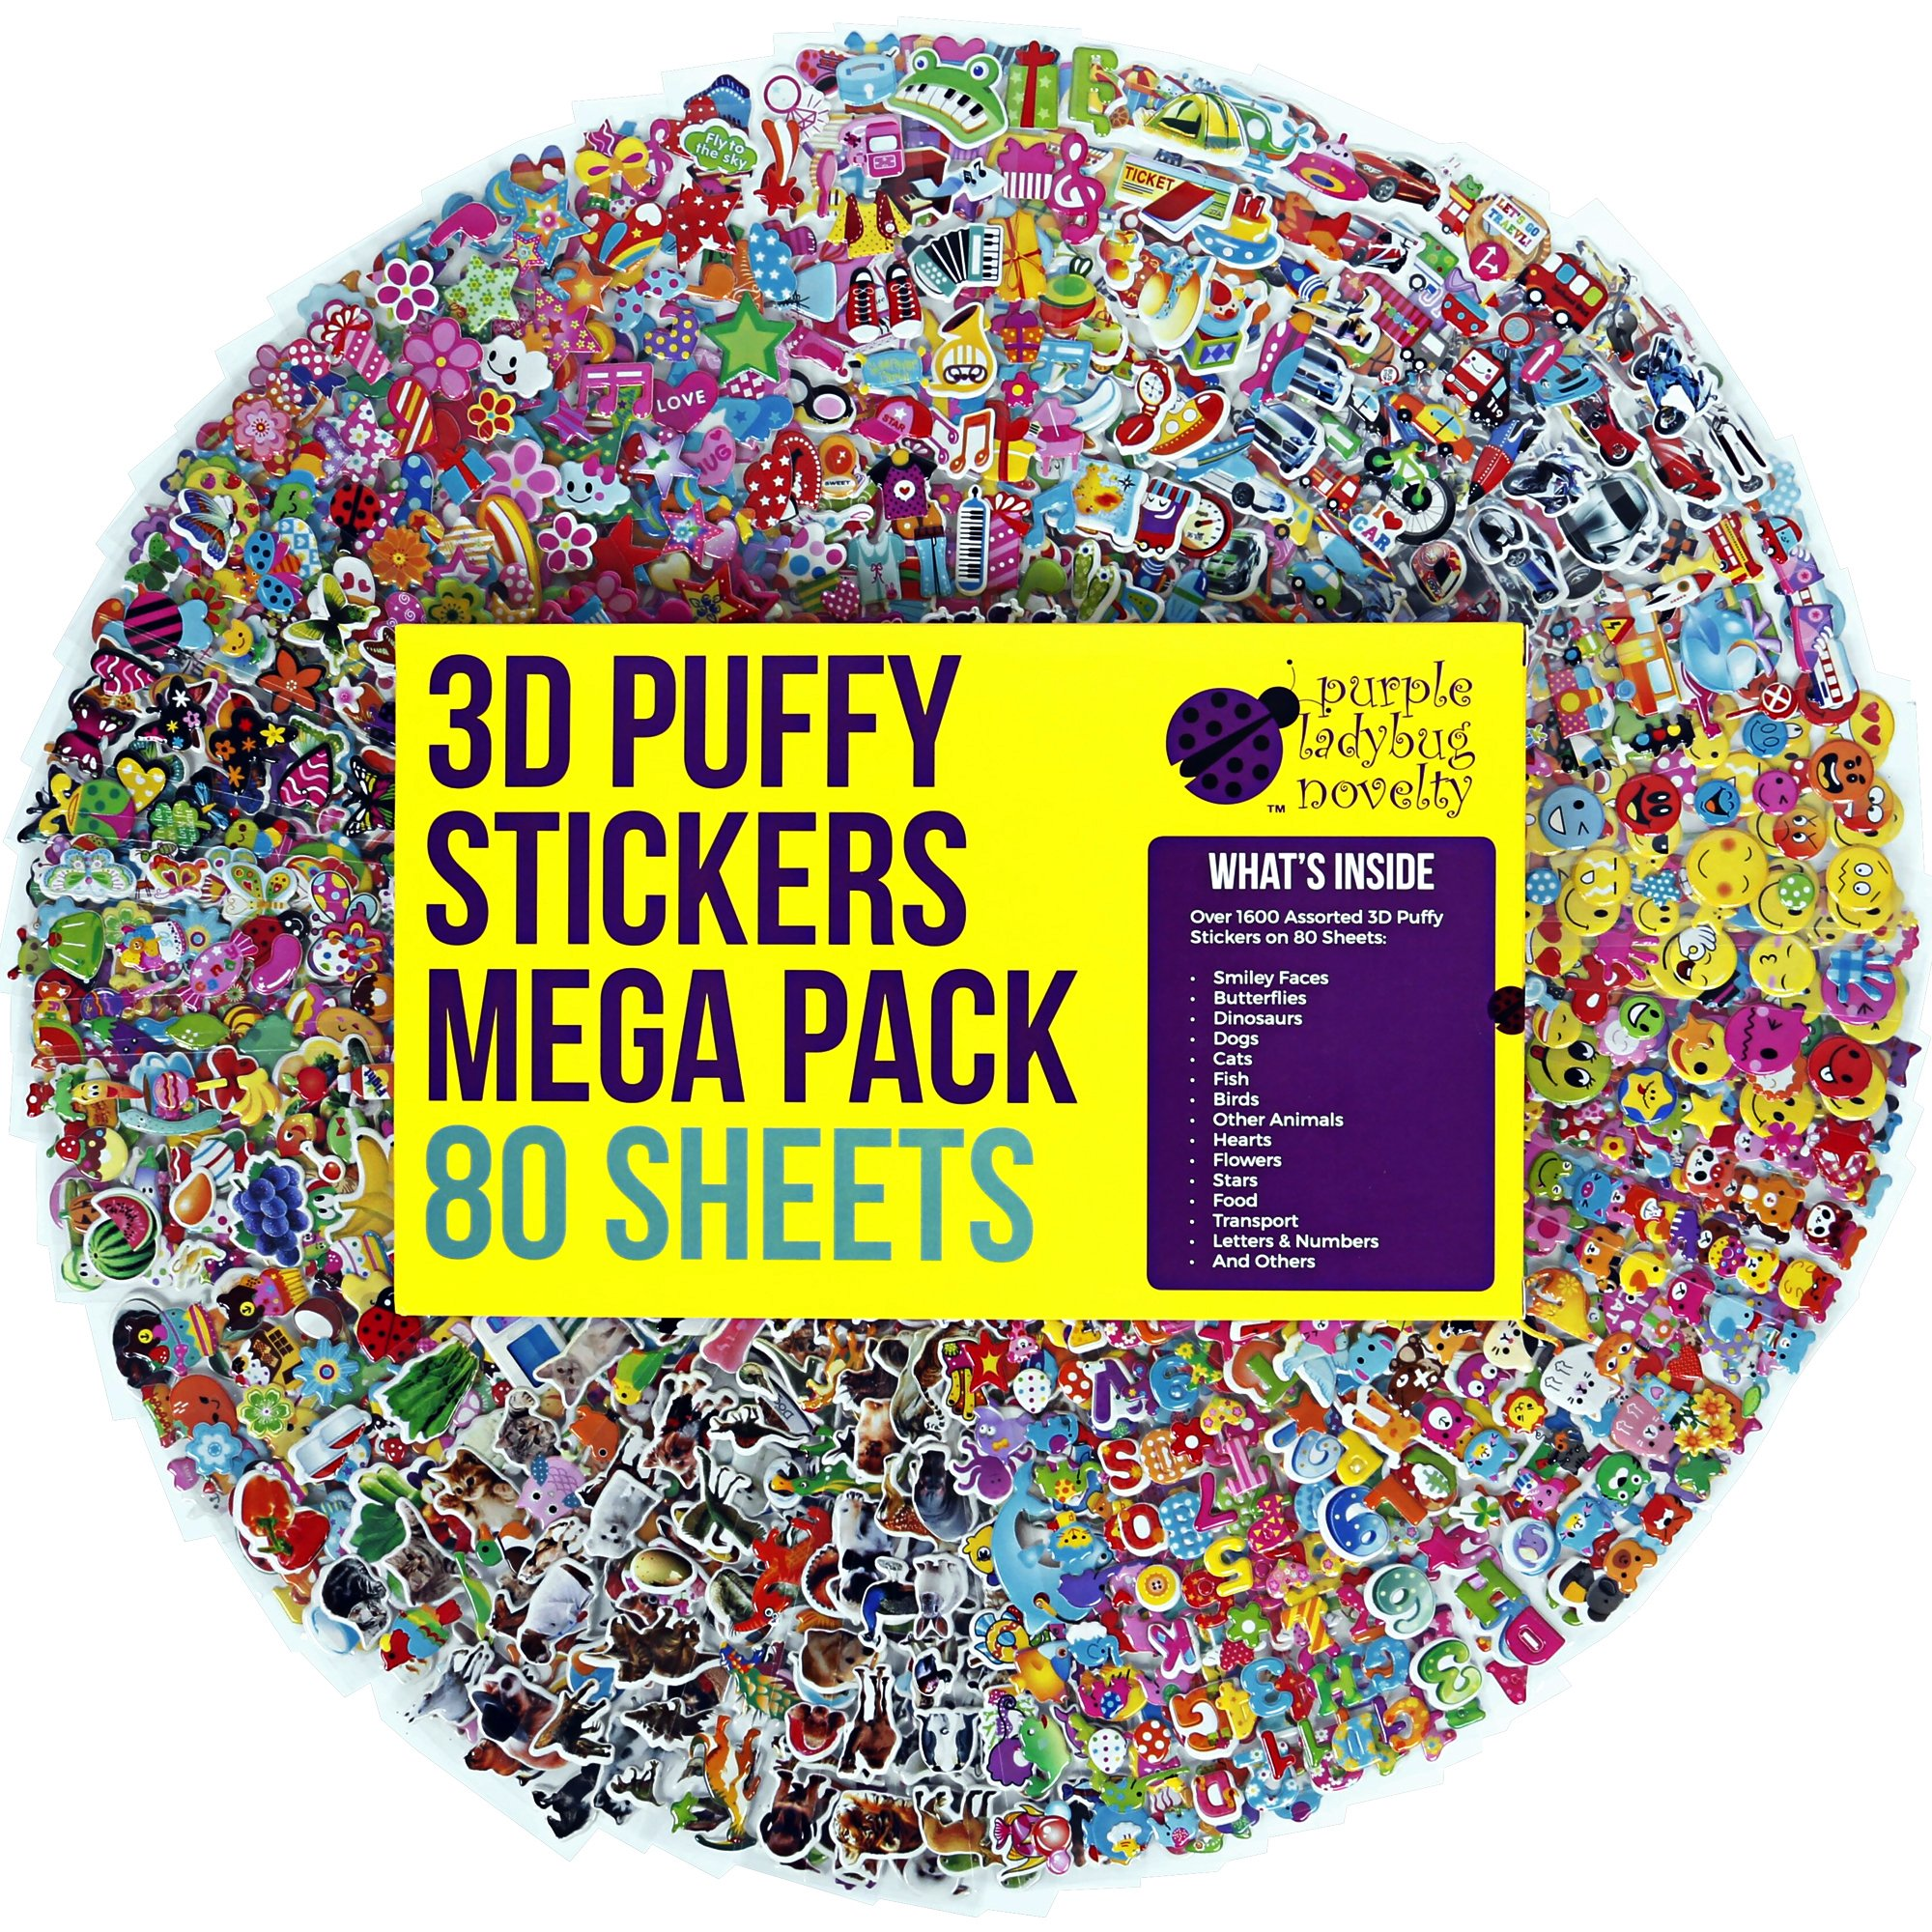 Purple Ladybug Novelty 80 Different Sheets Kids & Toddlers Puffy Stickers Mega Variety Pack - Over 1900 3D Puffy Stickers Kids - Including Animals , Smiley Faces , Cars , Stars More!